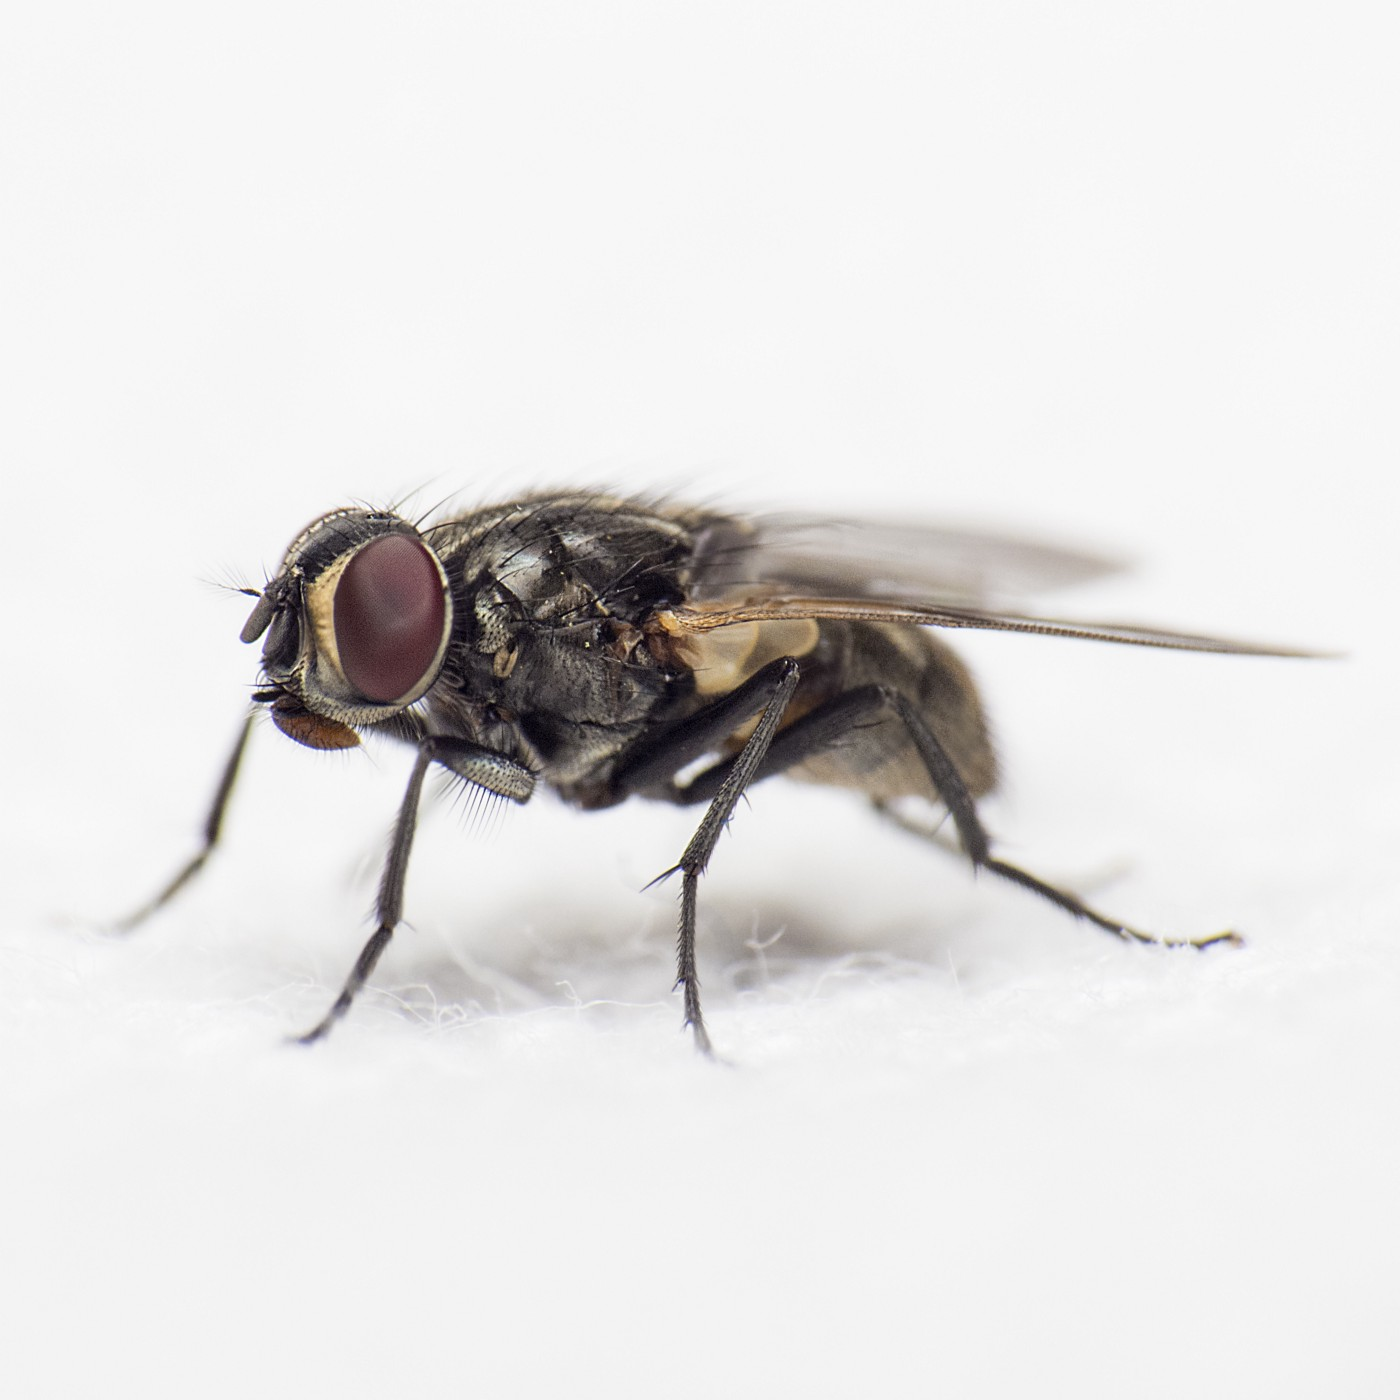 A fly on a white background